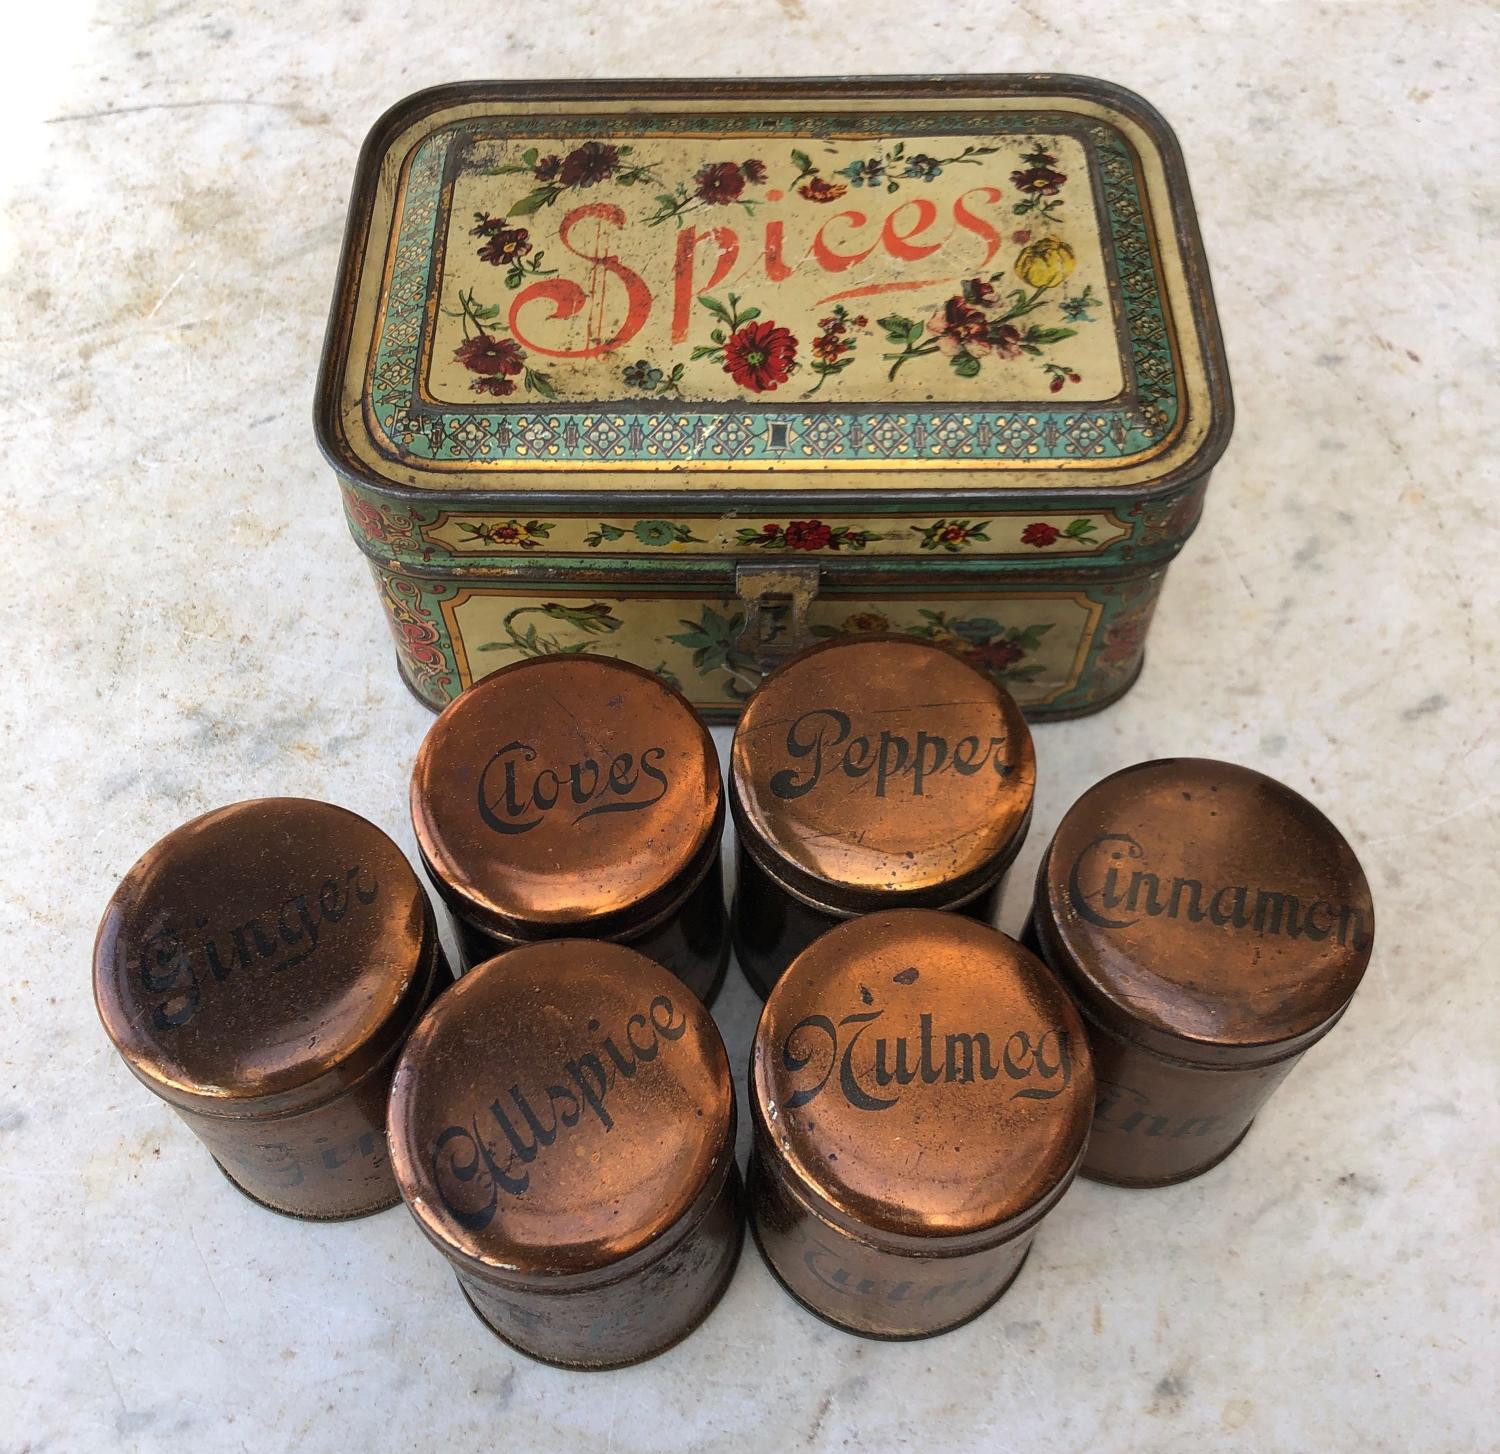 Early 20th Century Spices Box - Complete with Six Spice Tins